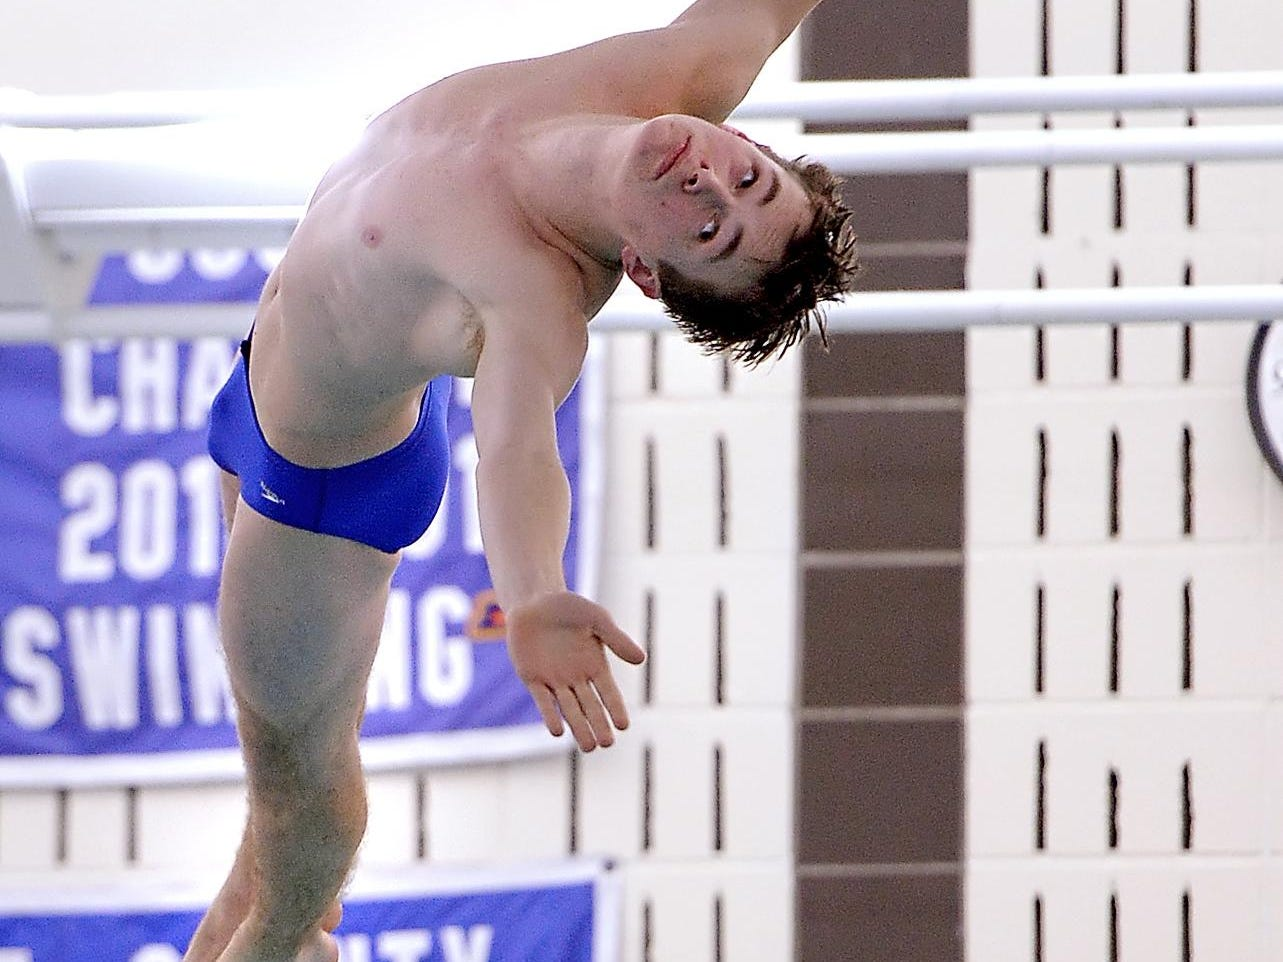 Brockport's Antonio Guerrieri performs a dive during a meet at Brockport High School on Thursday, Jan. 8, 2016.